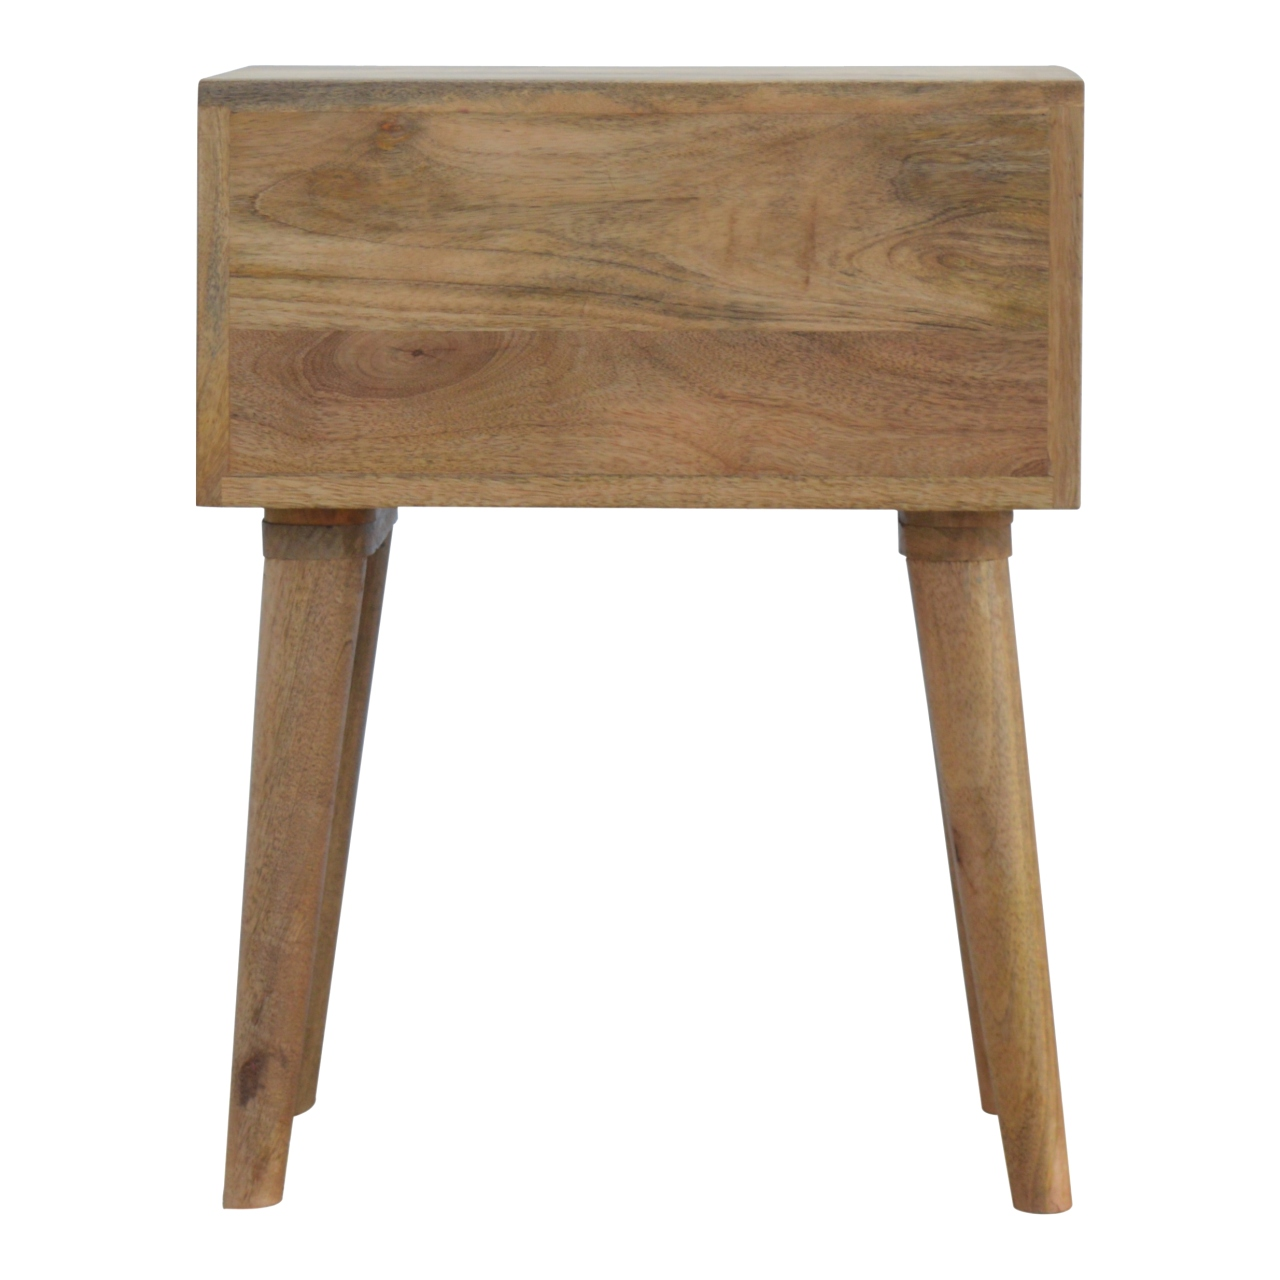 The Home Furnishings Company Nordic Style Blue 2 Drawer Bedside Table